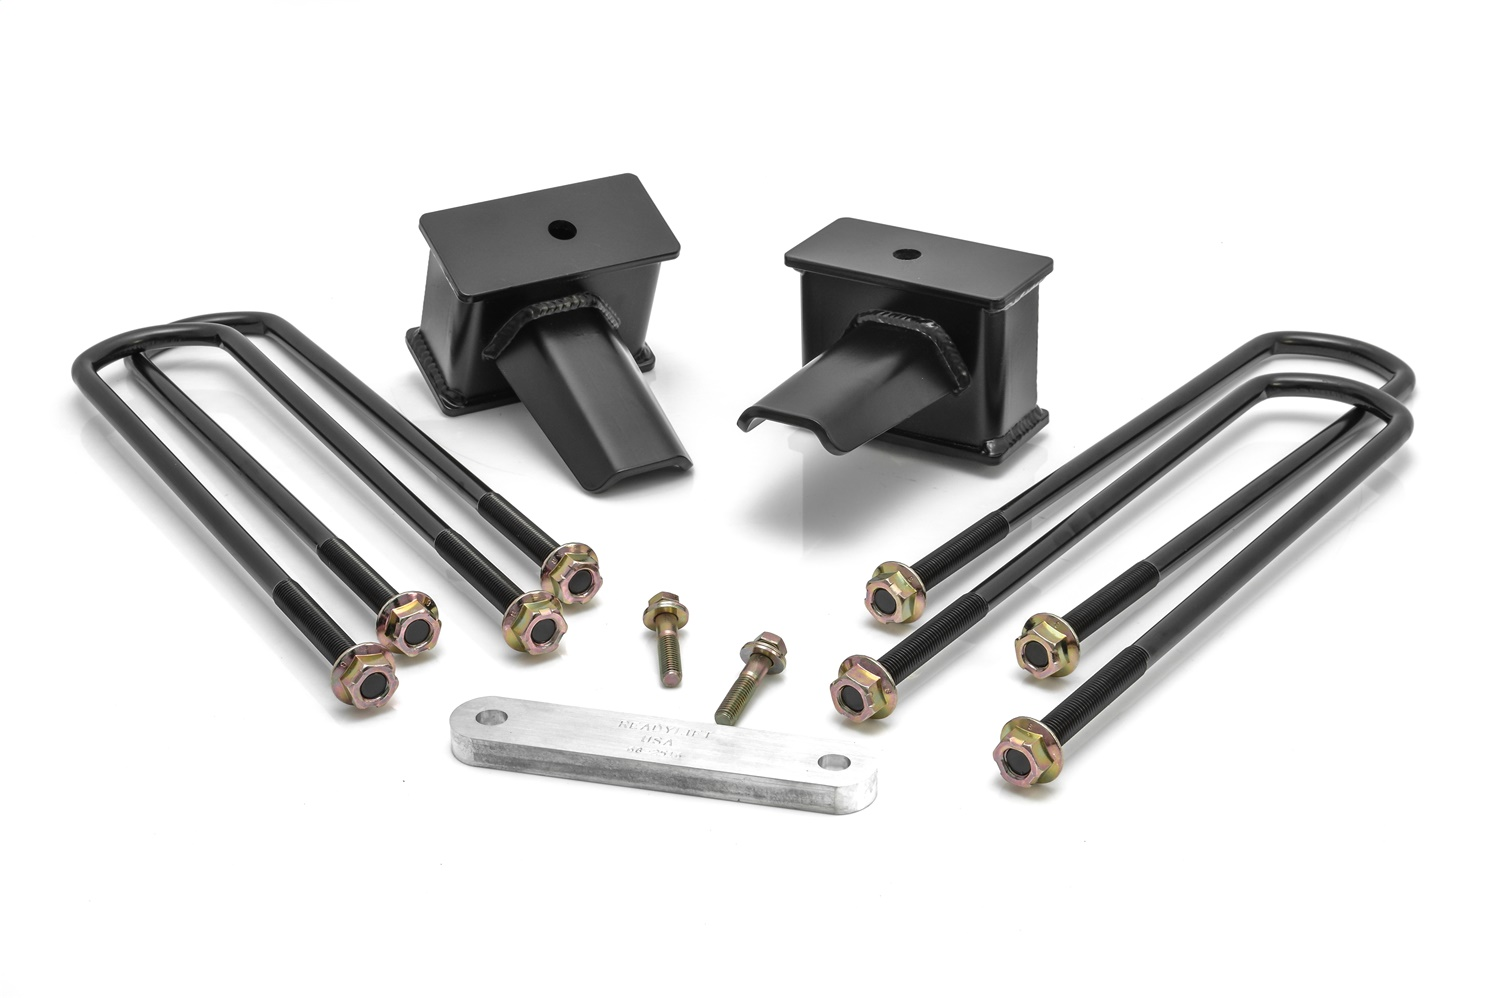 Rear Block Kit, 4 in. Flat Blocks, Incl. Carrier Bearing Spacer, For Vehicles w/2 Pc. Drive Shaft